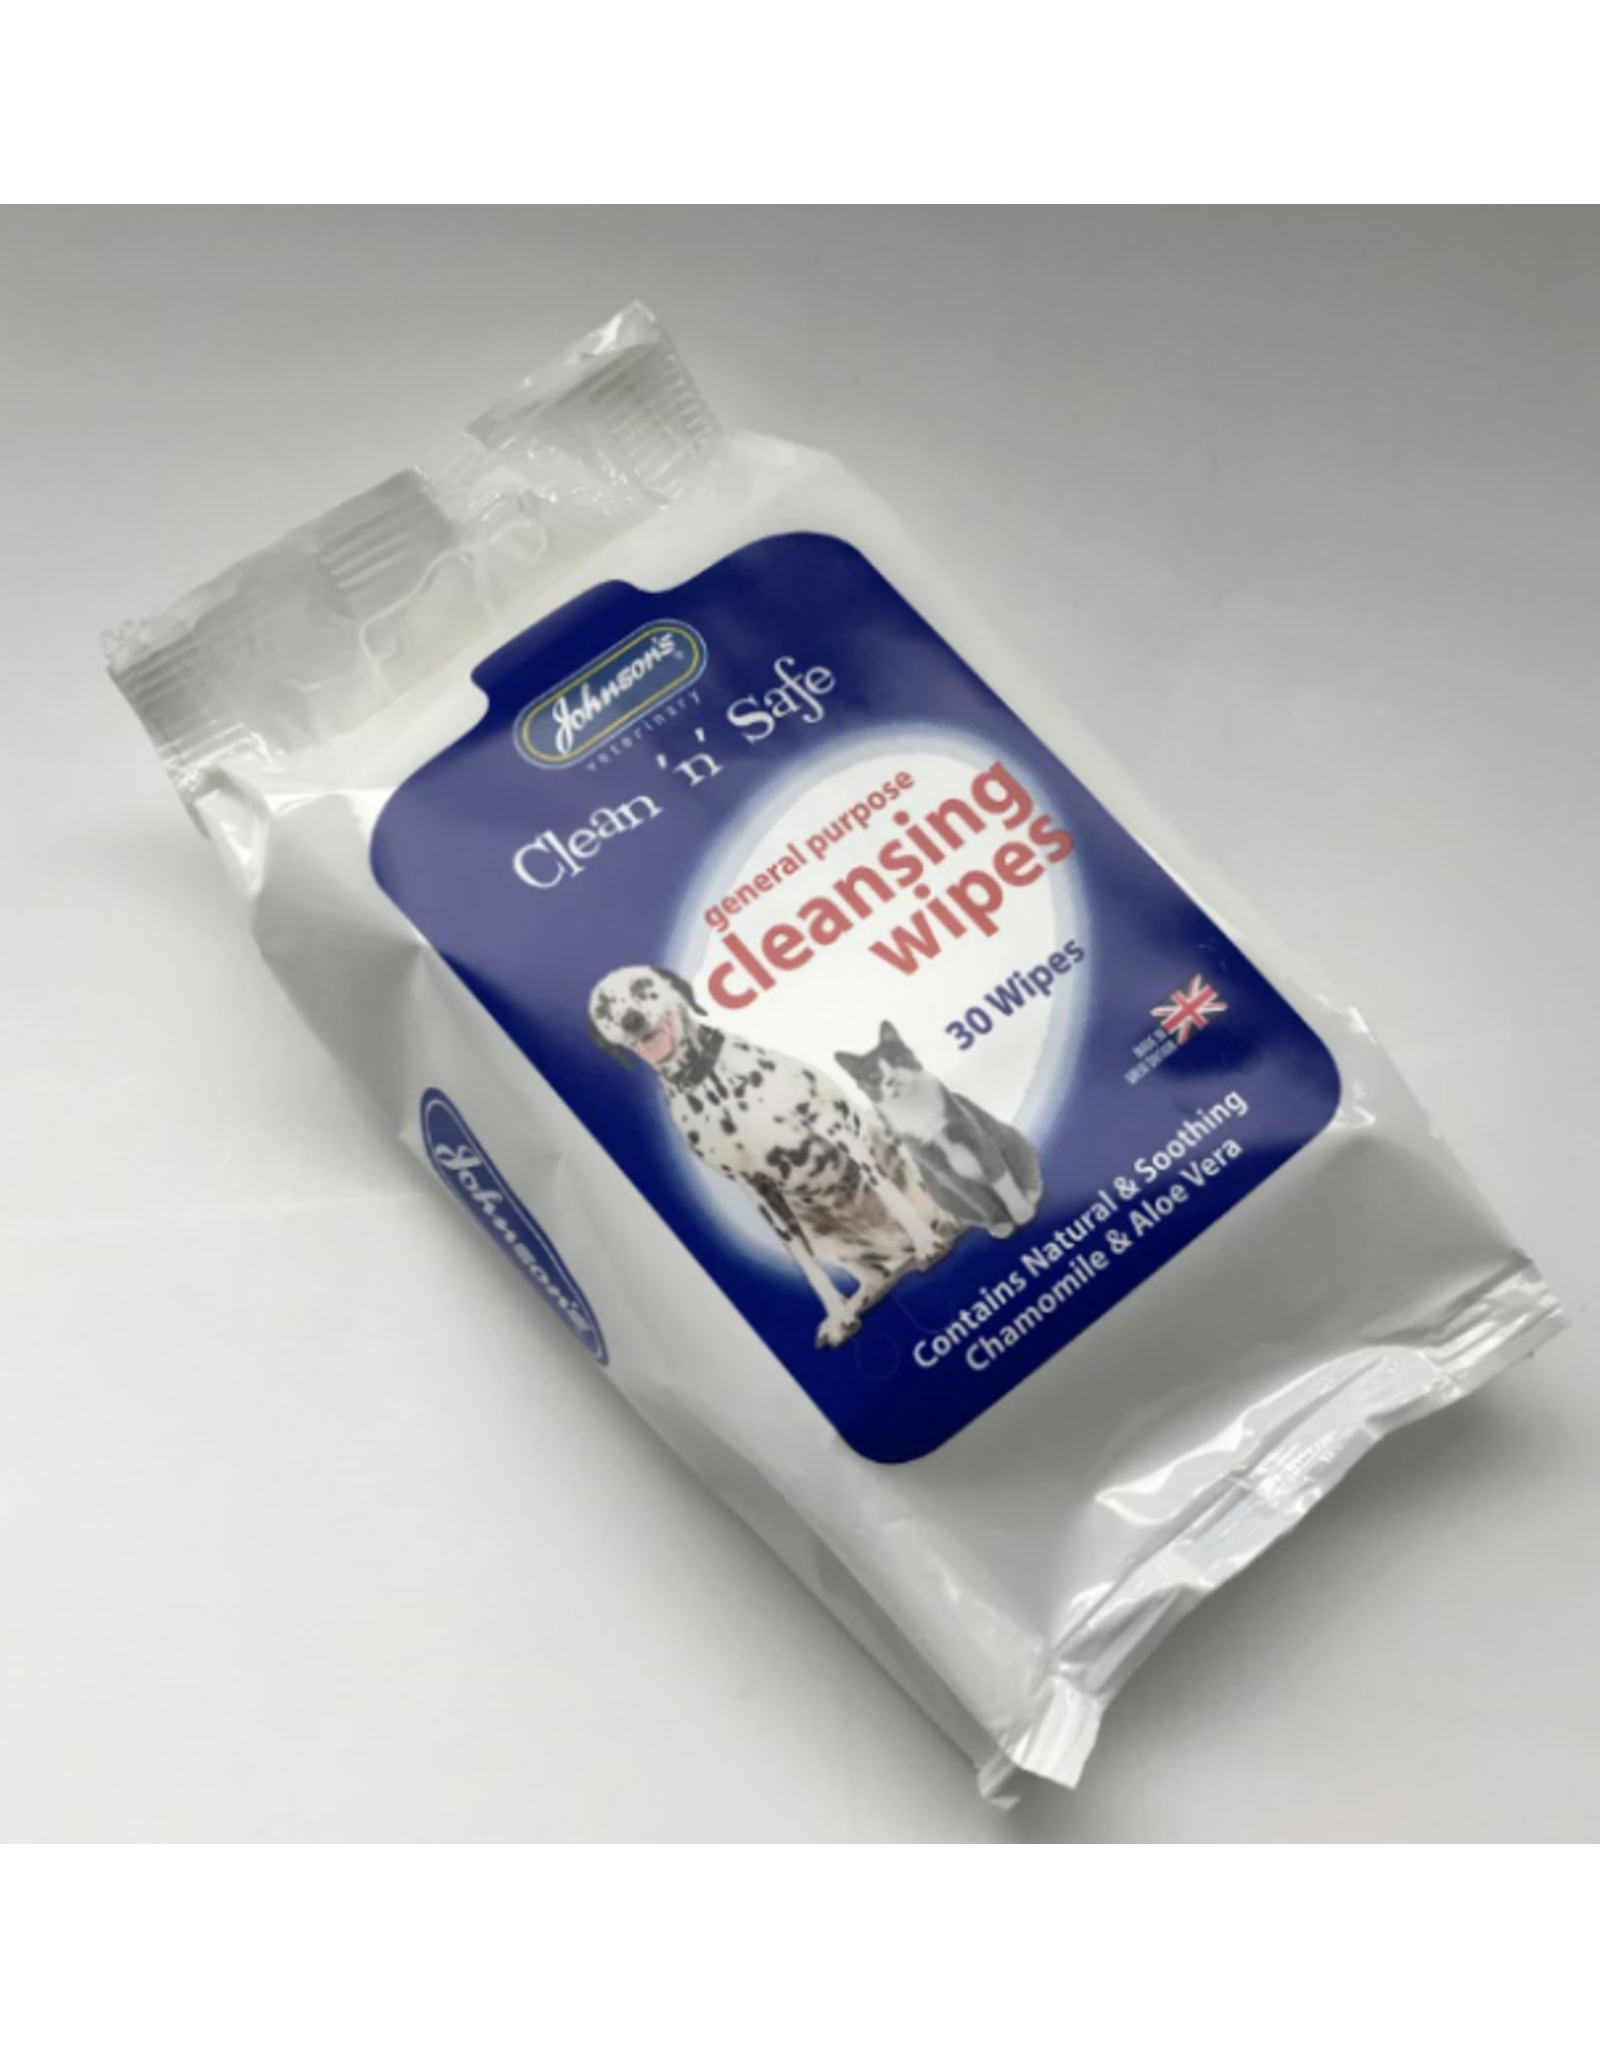 Johnsons Veterinary Clean n Safe Cleansing Wipes, 30 pack